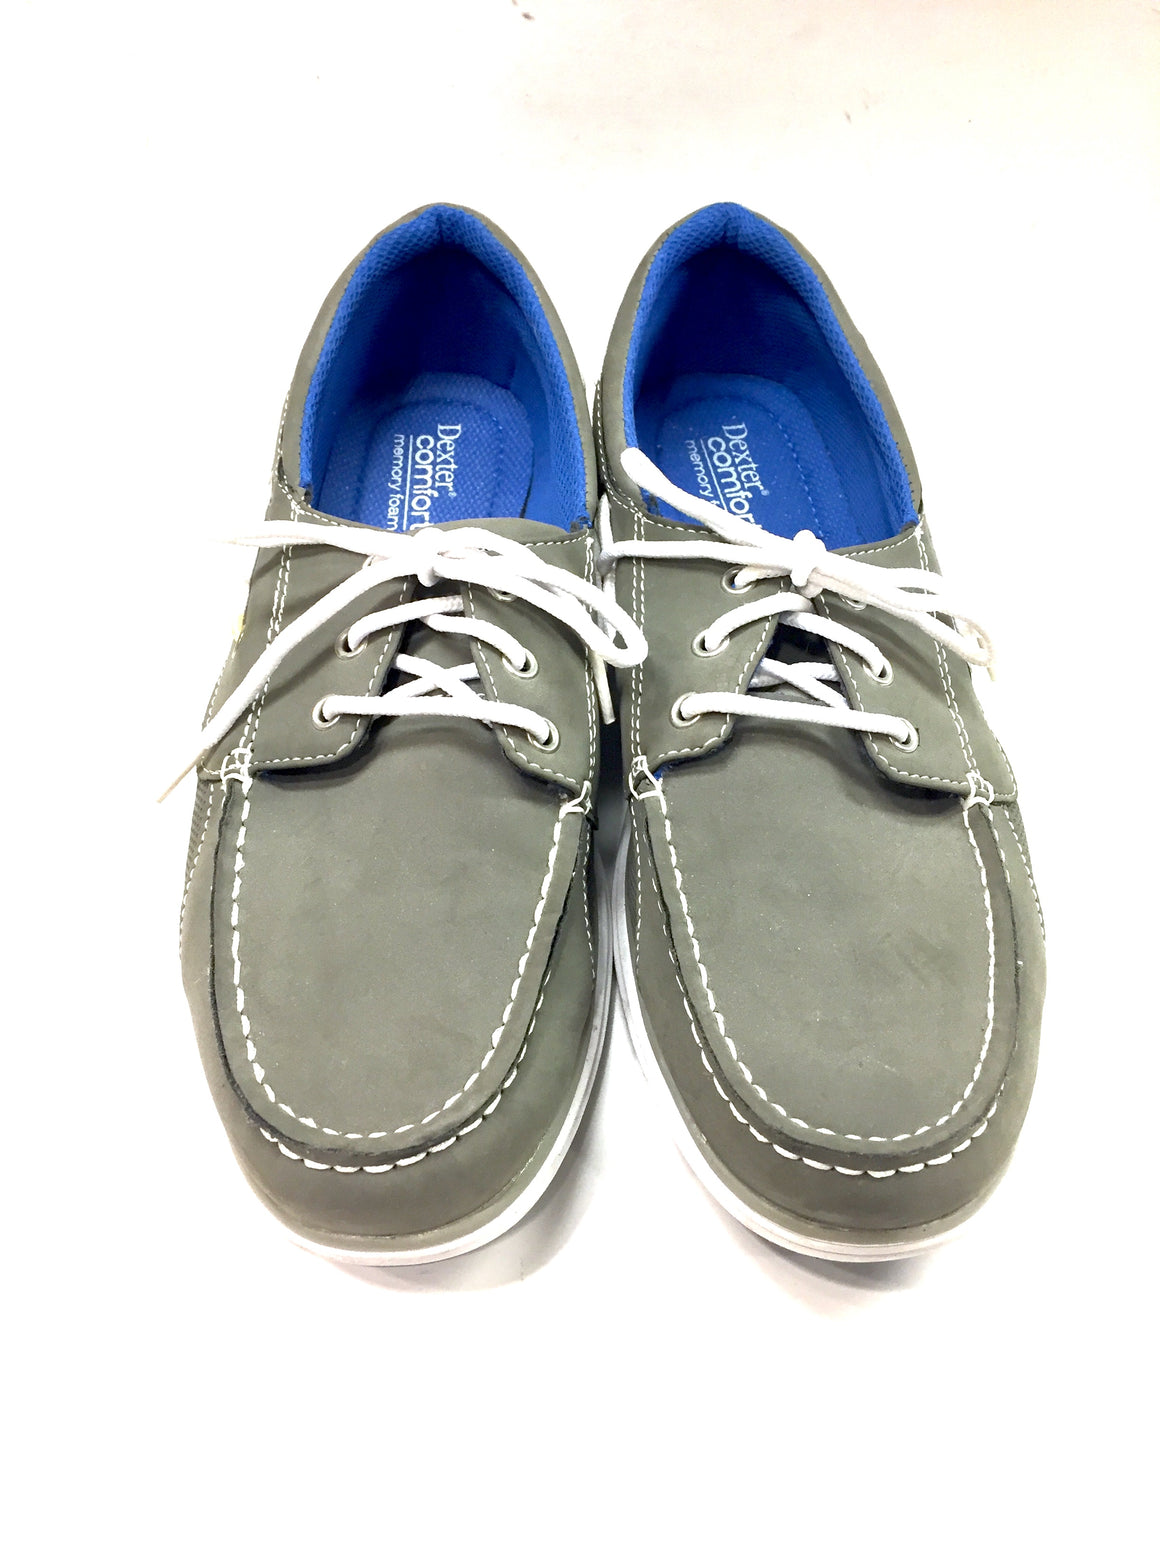 DEXTER COMFORT Gray Suede White Rubber Soles Memory Foam Men's Boat Shoes Top Siders Sz11